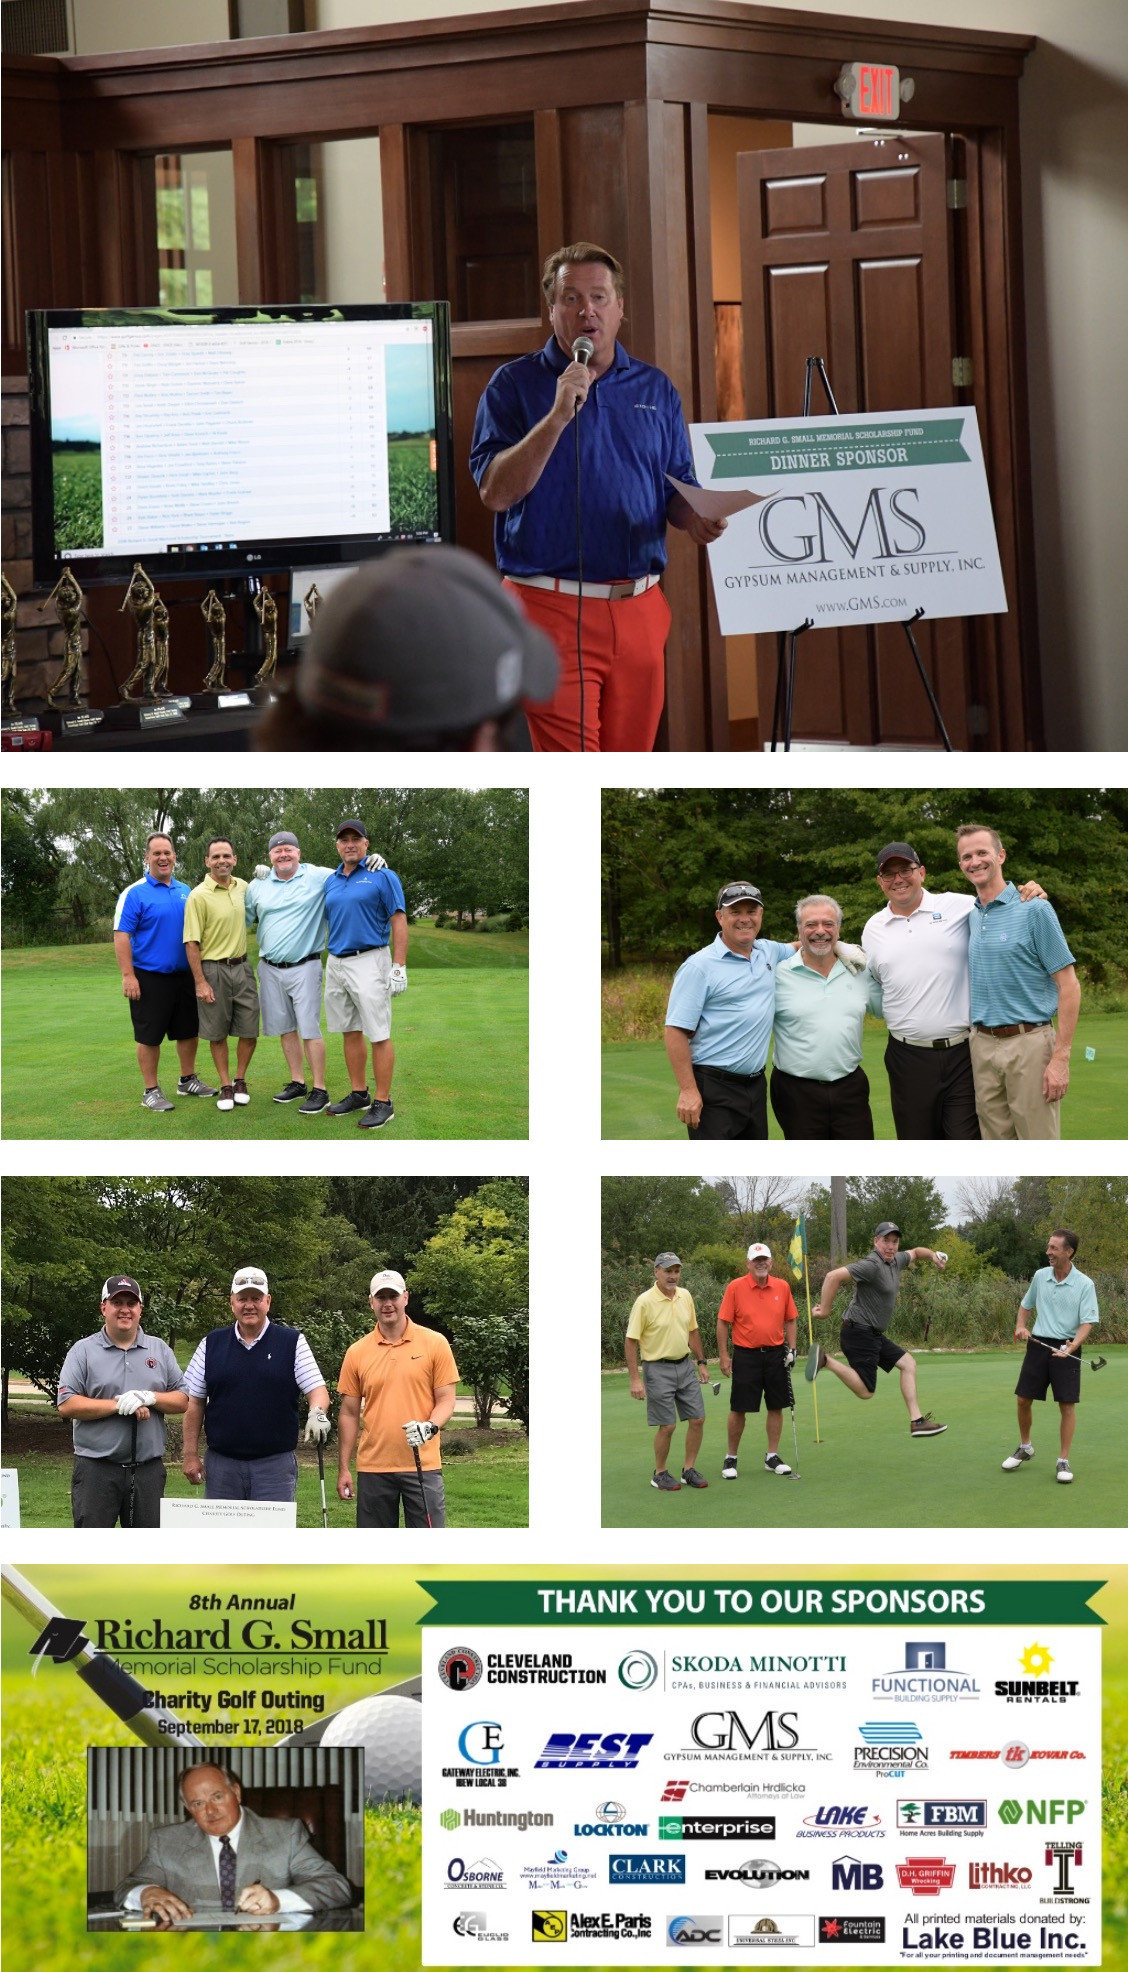 Richard G. Small Foundation Golf Outing Photos